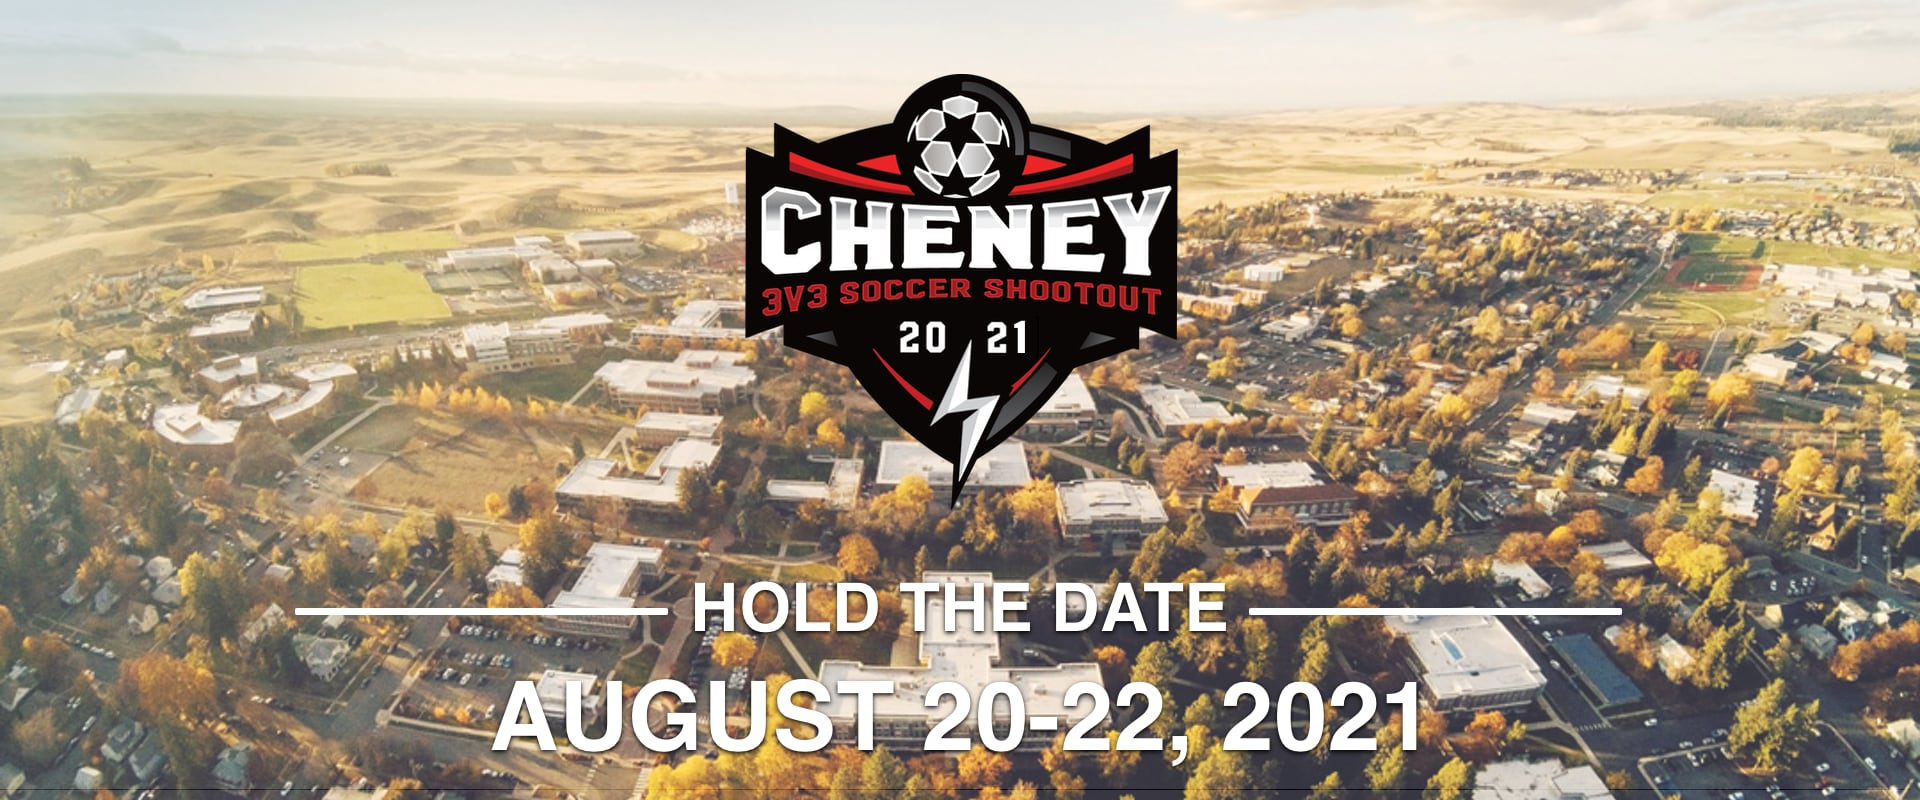 Cheney 3v3 Soccer Shootout 2021 Hold the Date